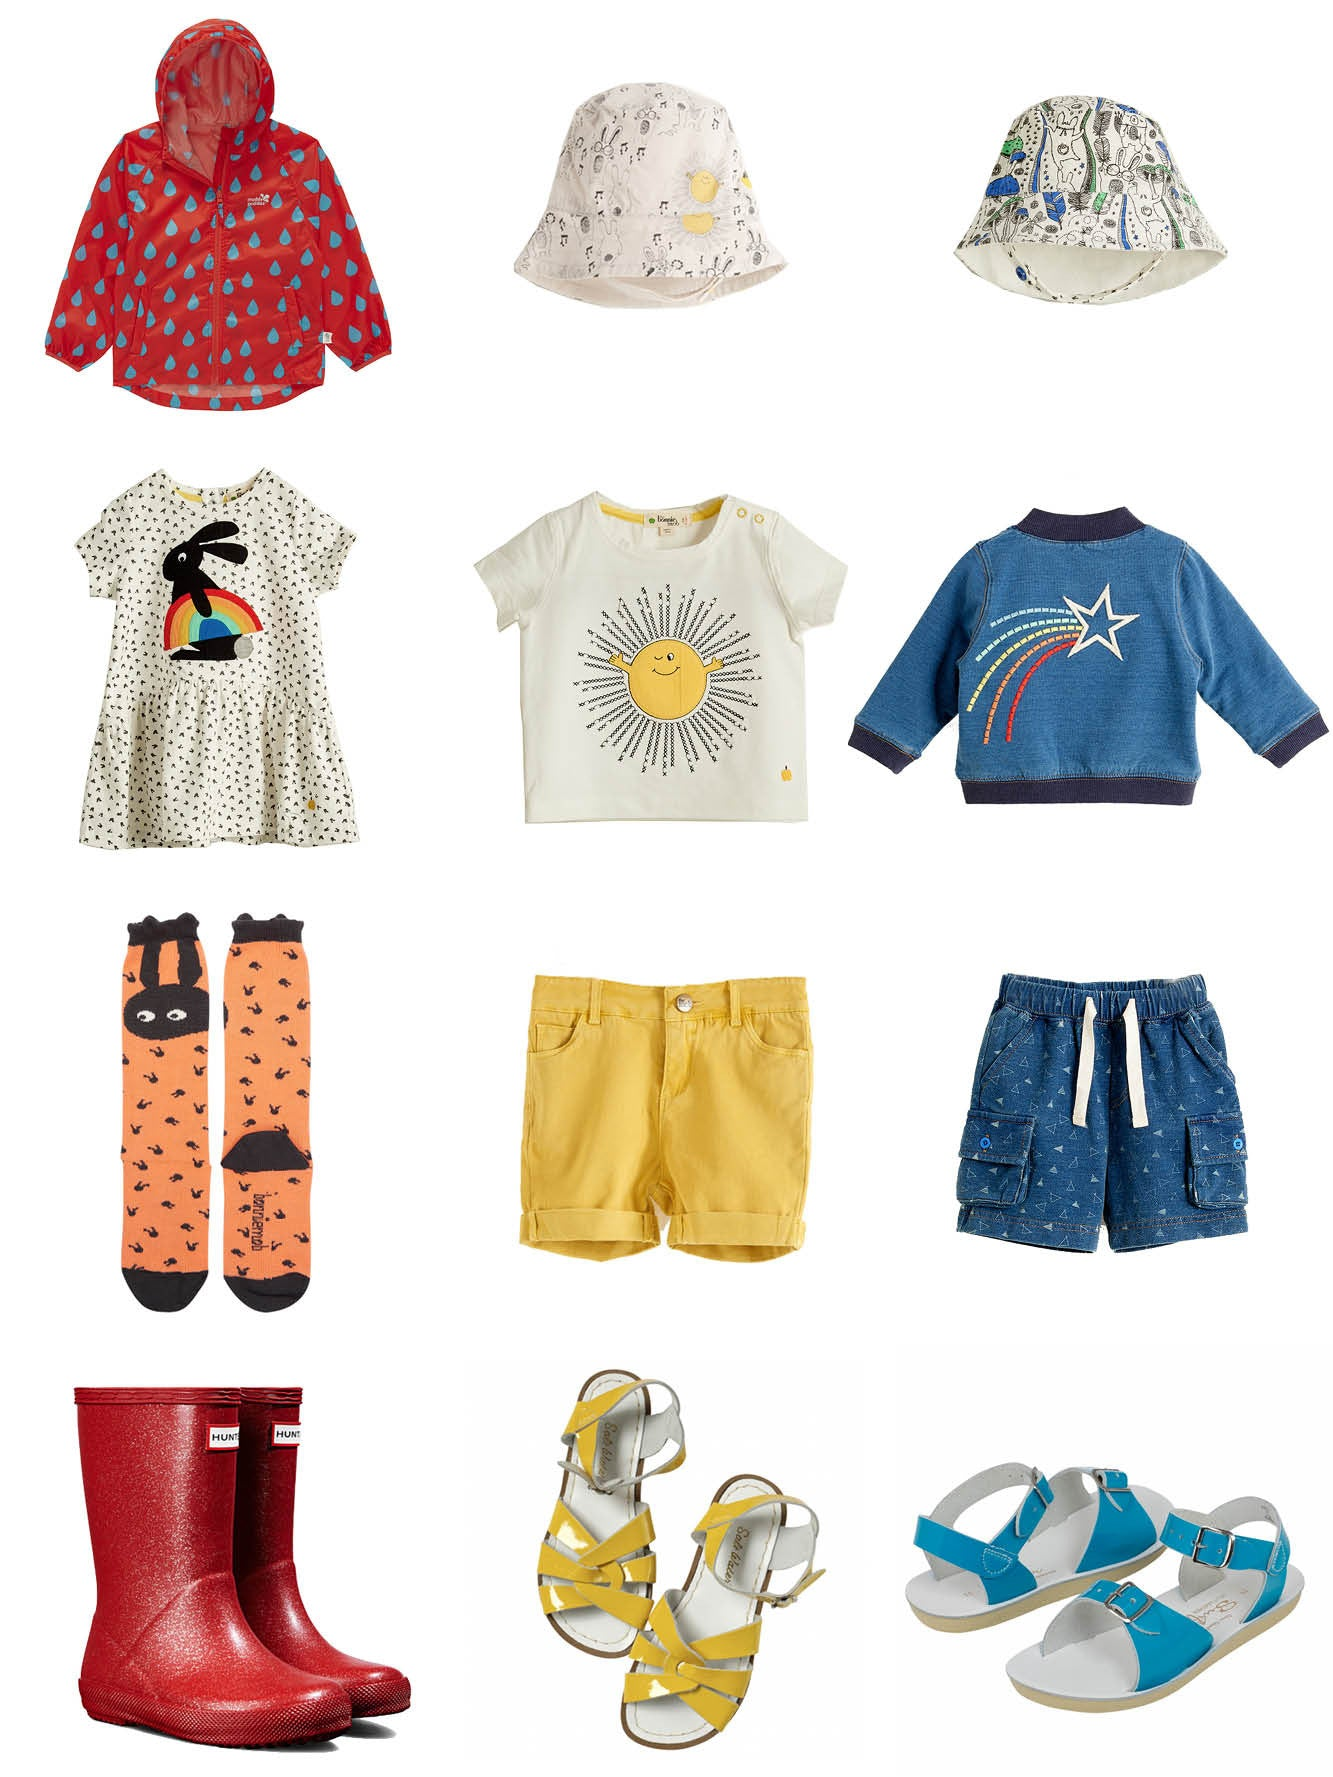 festival outfits for kids and babies